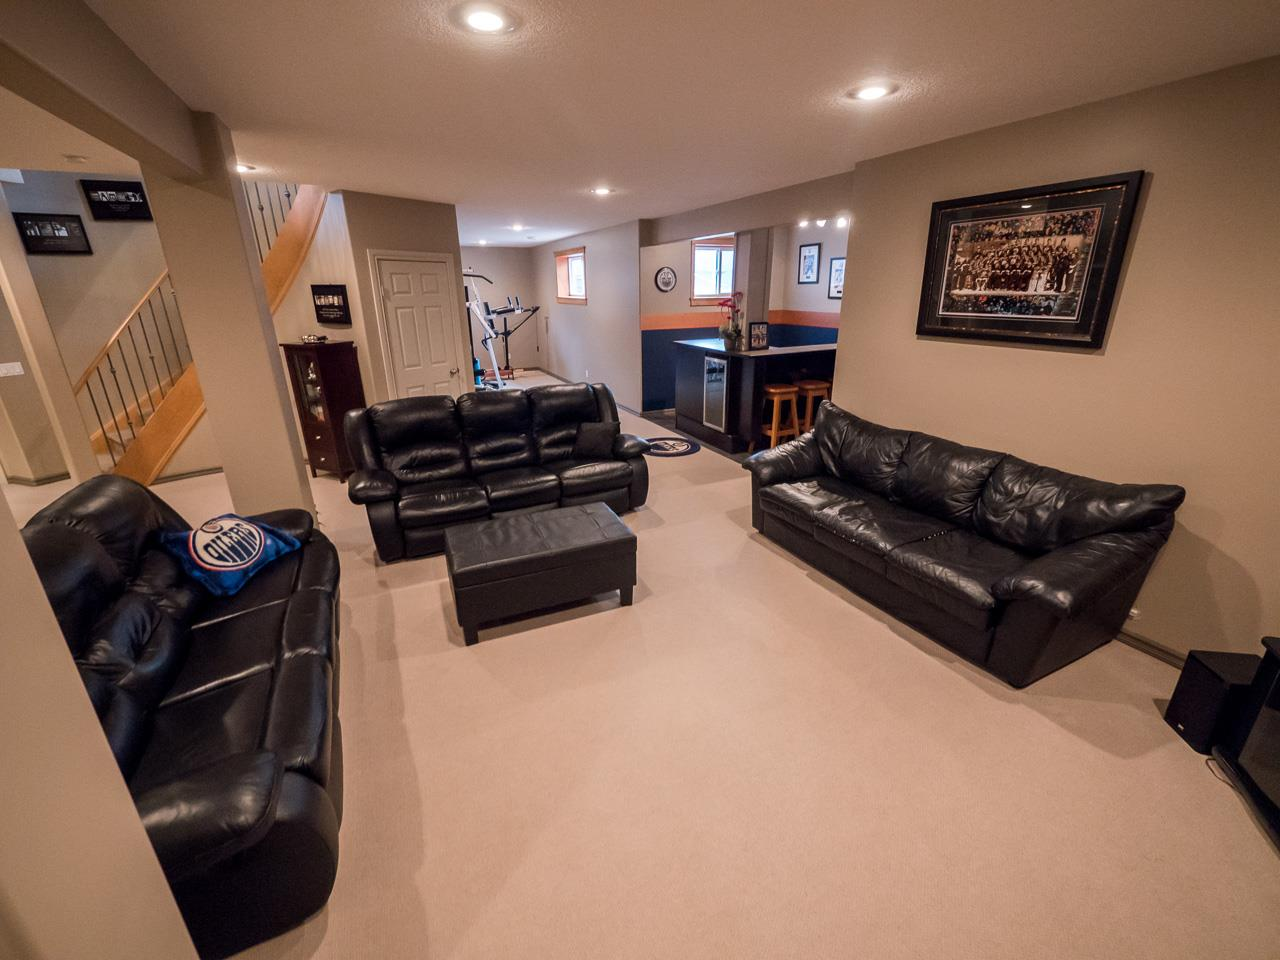 Photo 22: 51543 RR 220: Rural Strathcona County House for sale : MLS(r) # E4072257